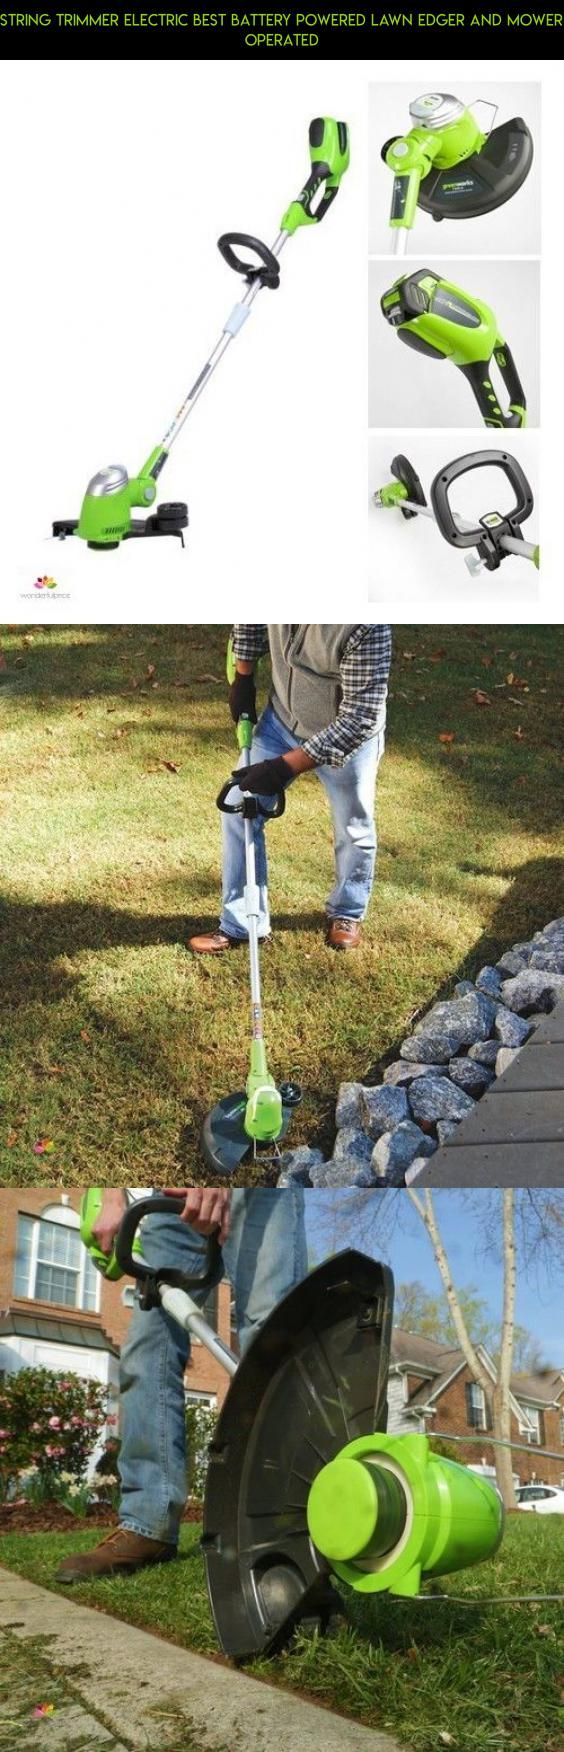 String Trimmer Electric Best Battery Powered Lawn Edger And Mower Operated #tech #shopping #battery #kit #technology #trimmers #racing #operated #gadgets #plans #products #drone #lawn #camera #parts #fpv